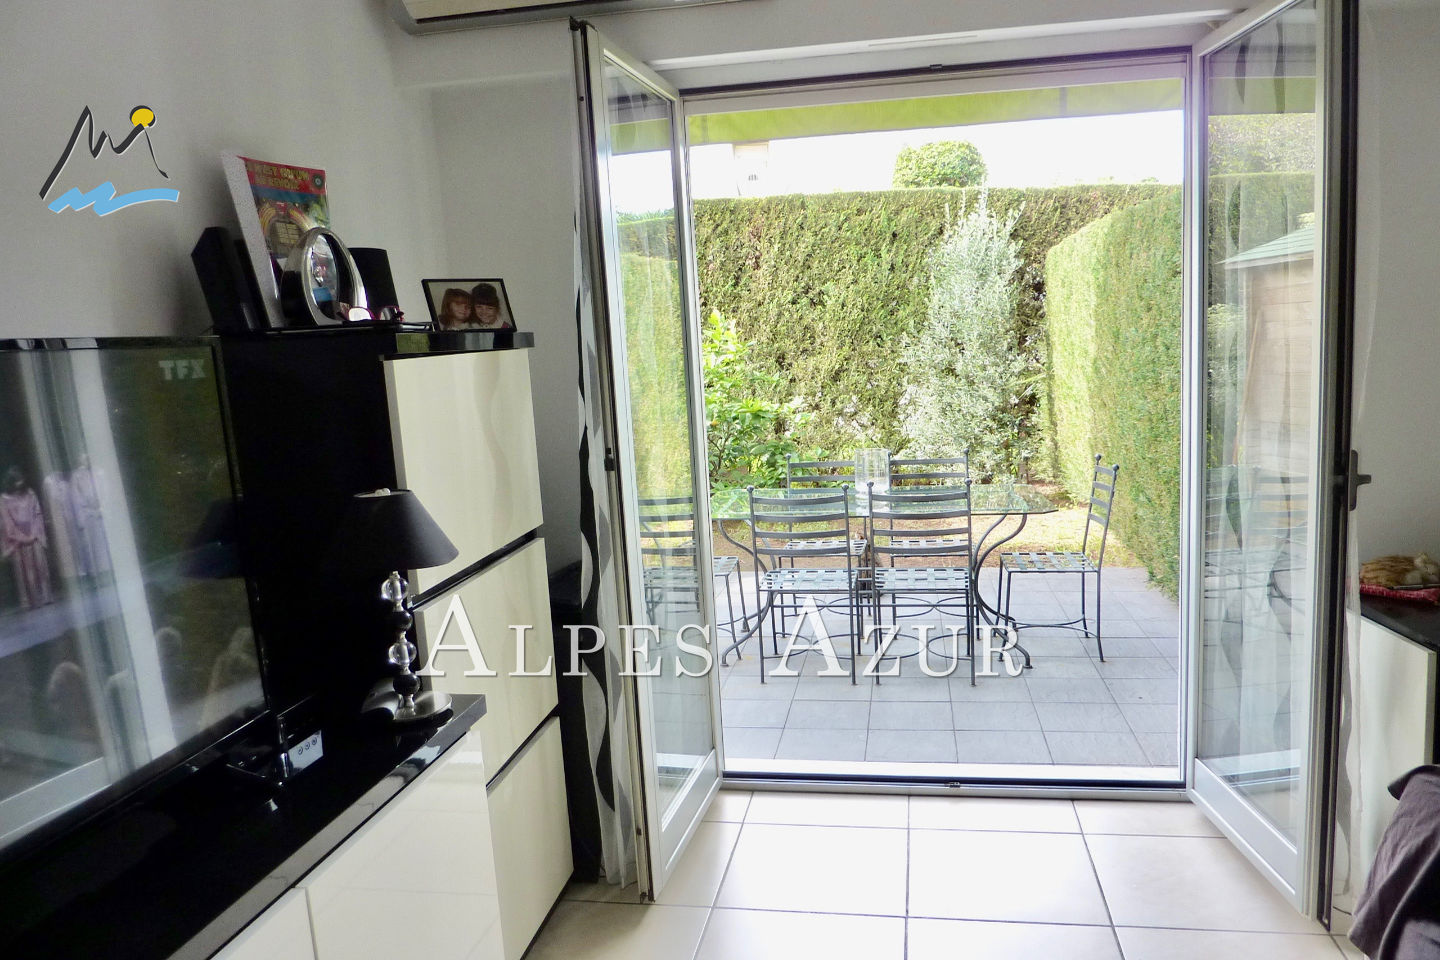 Vente Appartement rez-de-jardin Saint-Laurent-du-Var 06700 - 181 500 ...